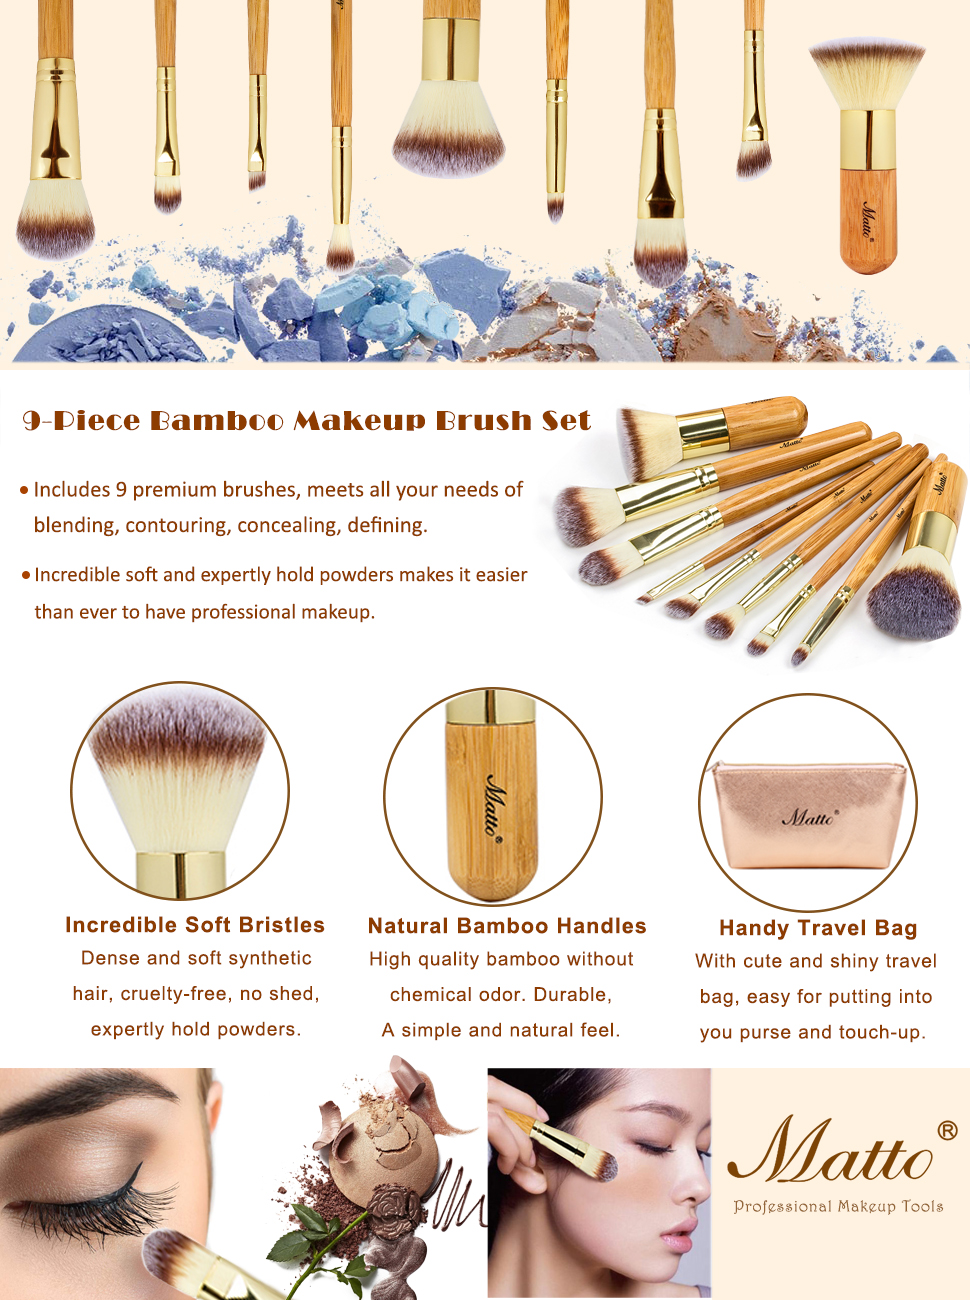 Bamboo Makeup Brushes: Amazon.com: Matto 9-Piece Bamboo Makeup Brush Set With